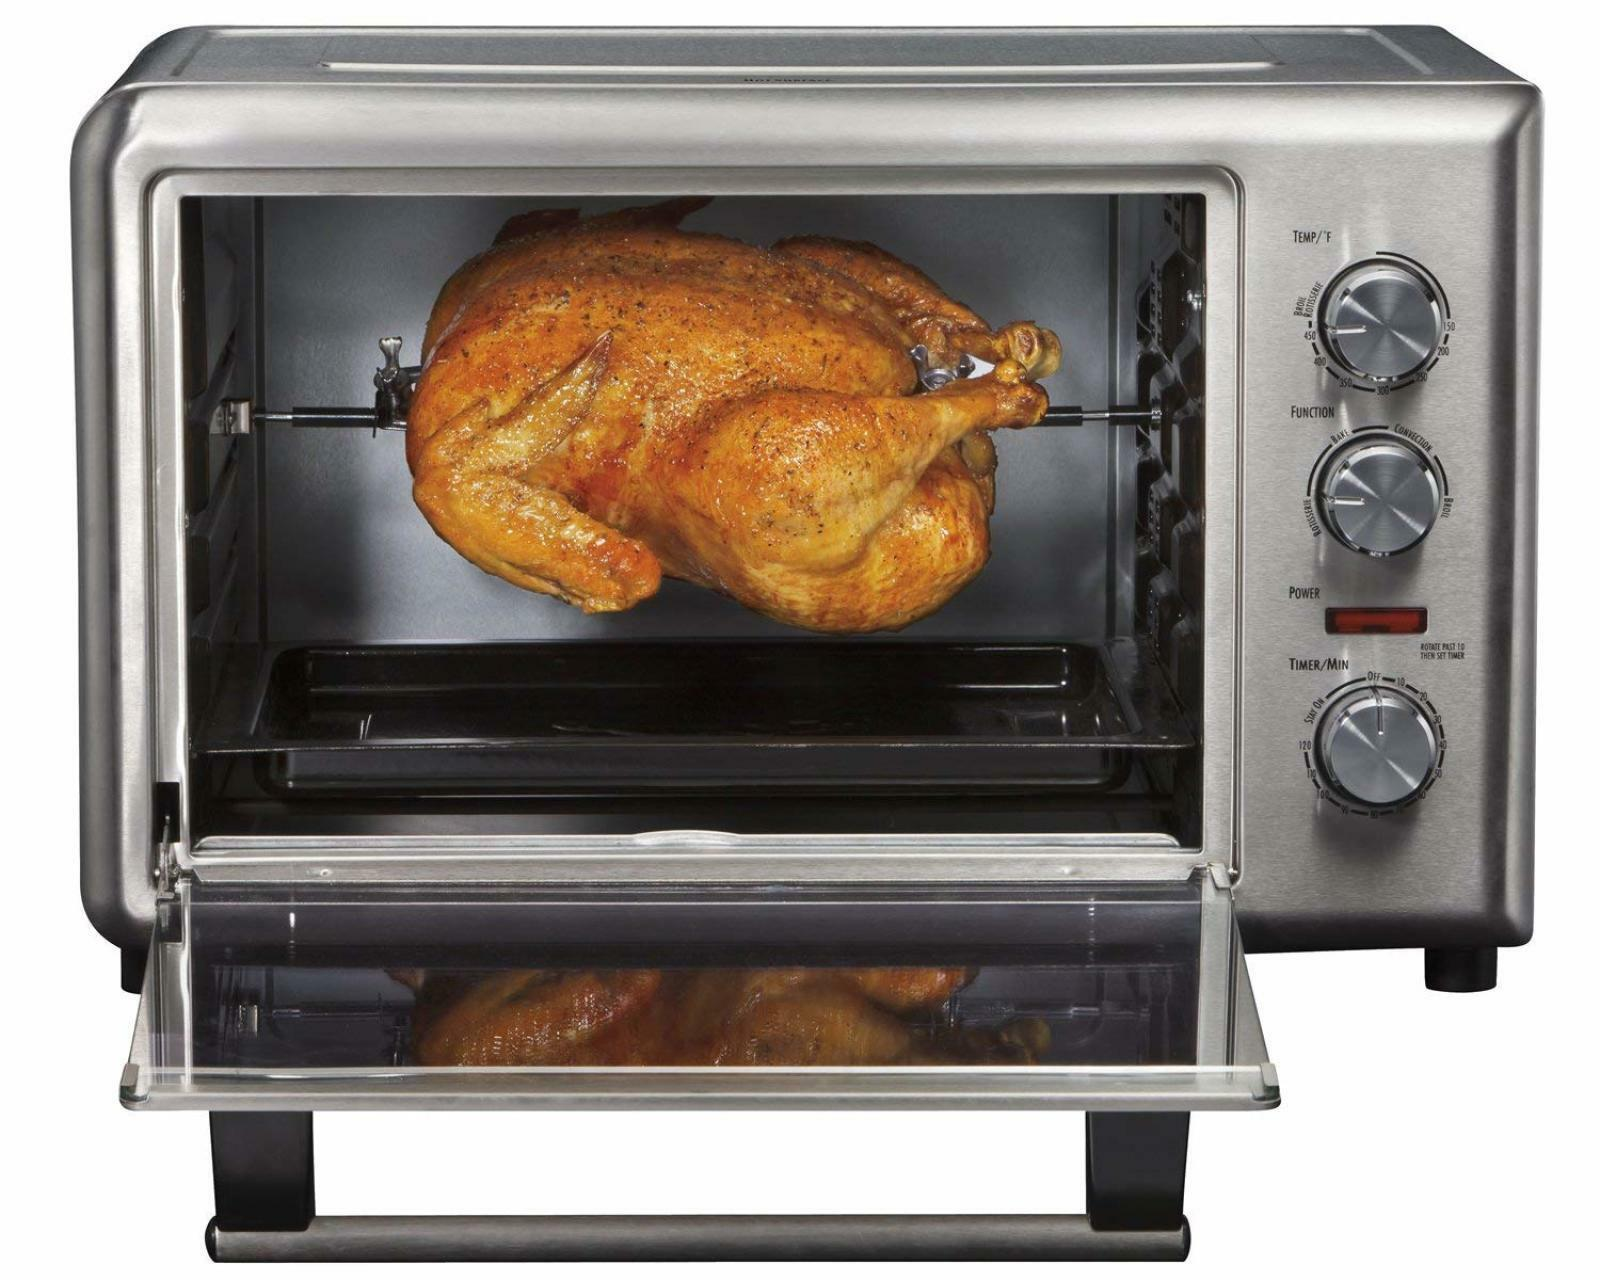 Hamilton Beach Countertop Convection Toaster Oven and redisserie Stainless Steel